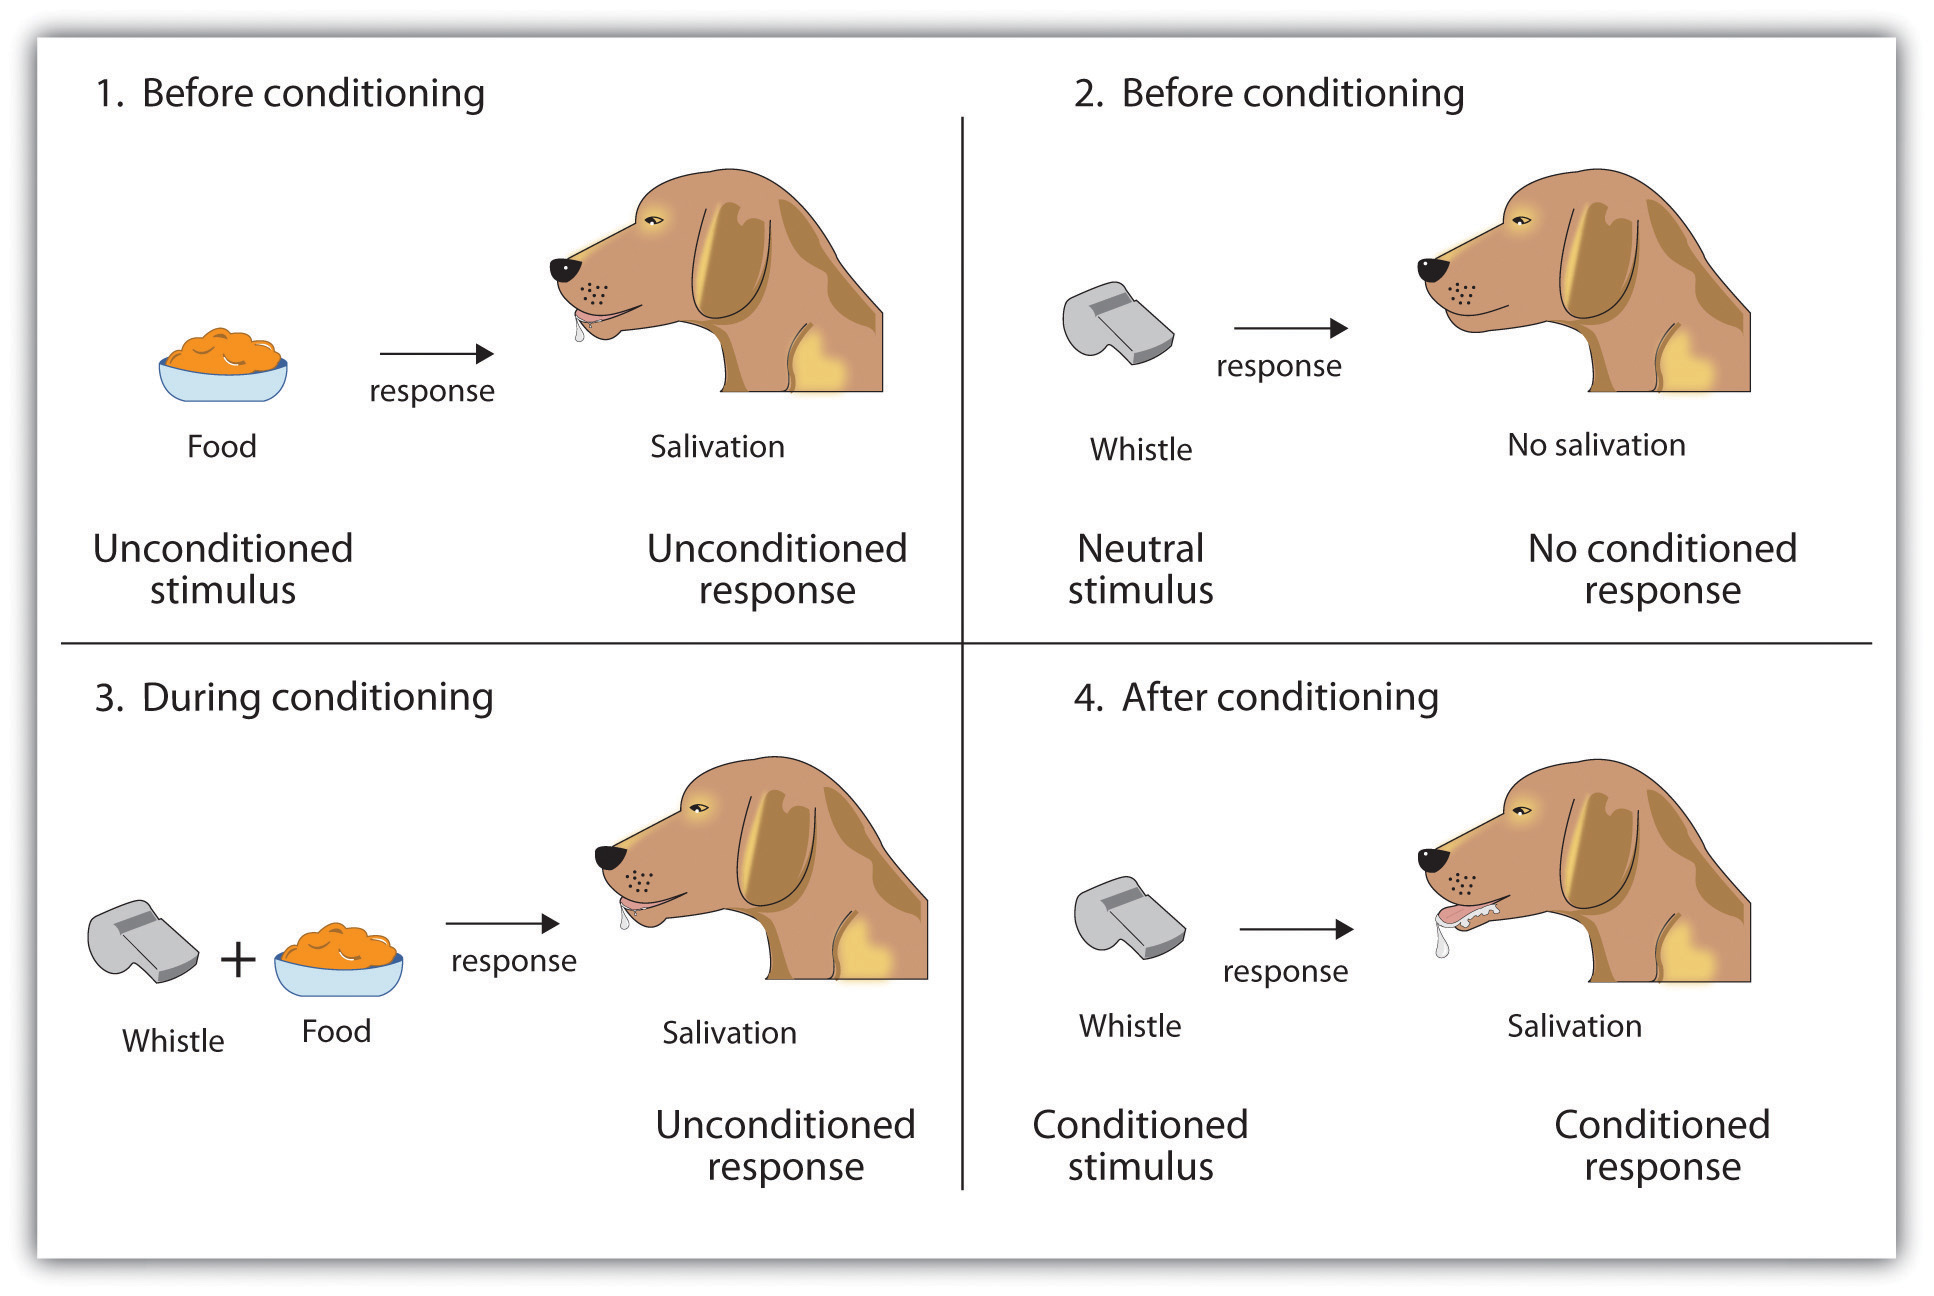 classical conditioning jpg atilde social work classical conditioning jpg 1934atilde1511296